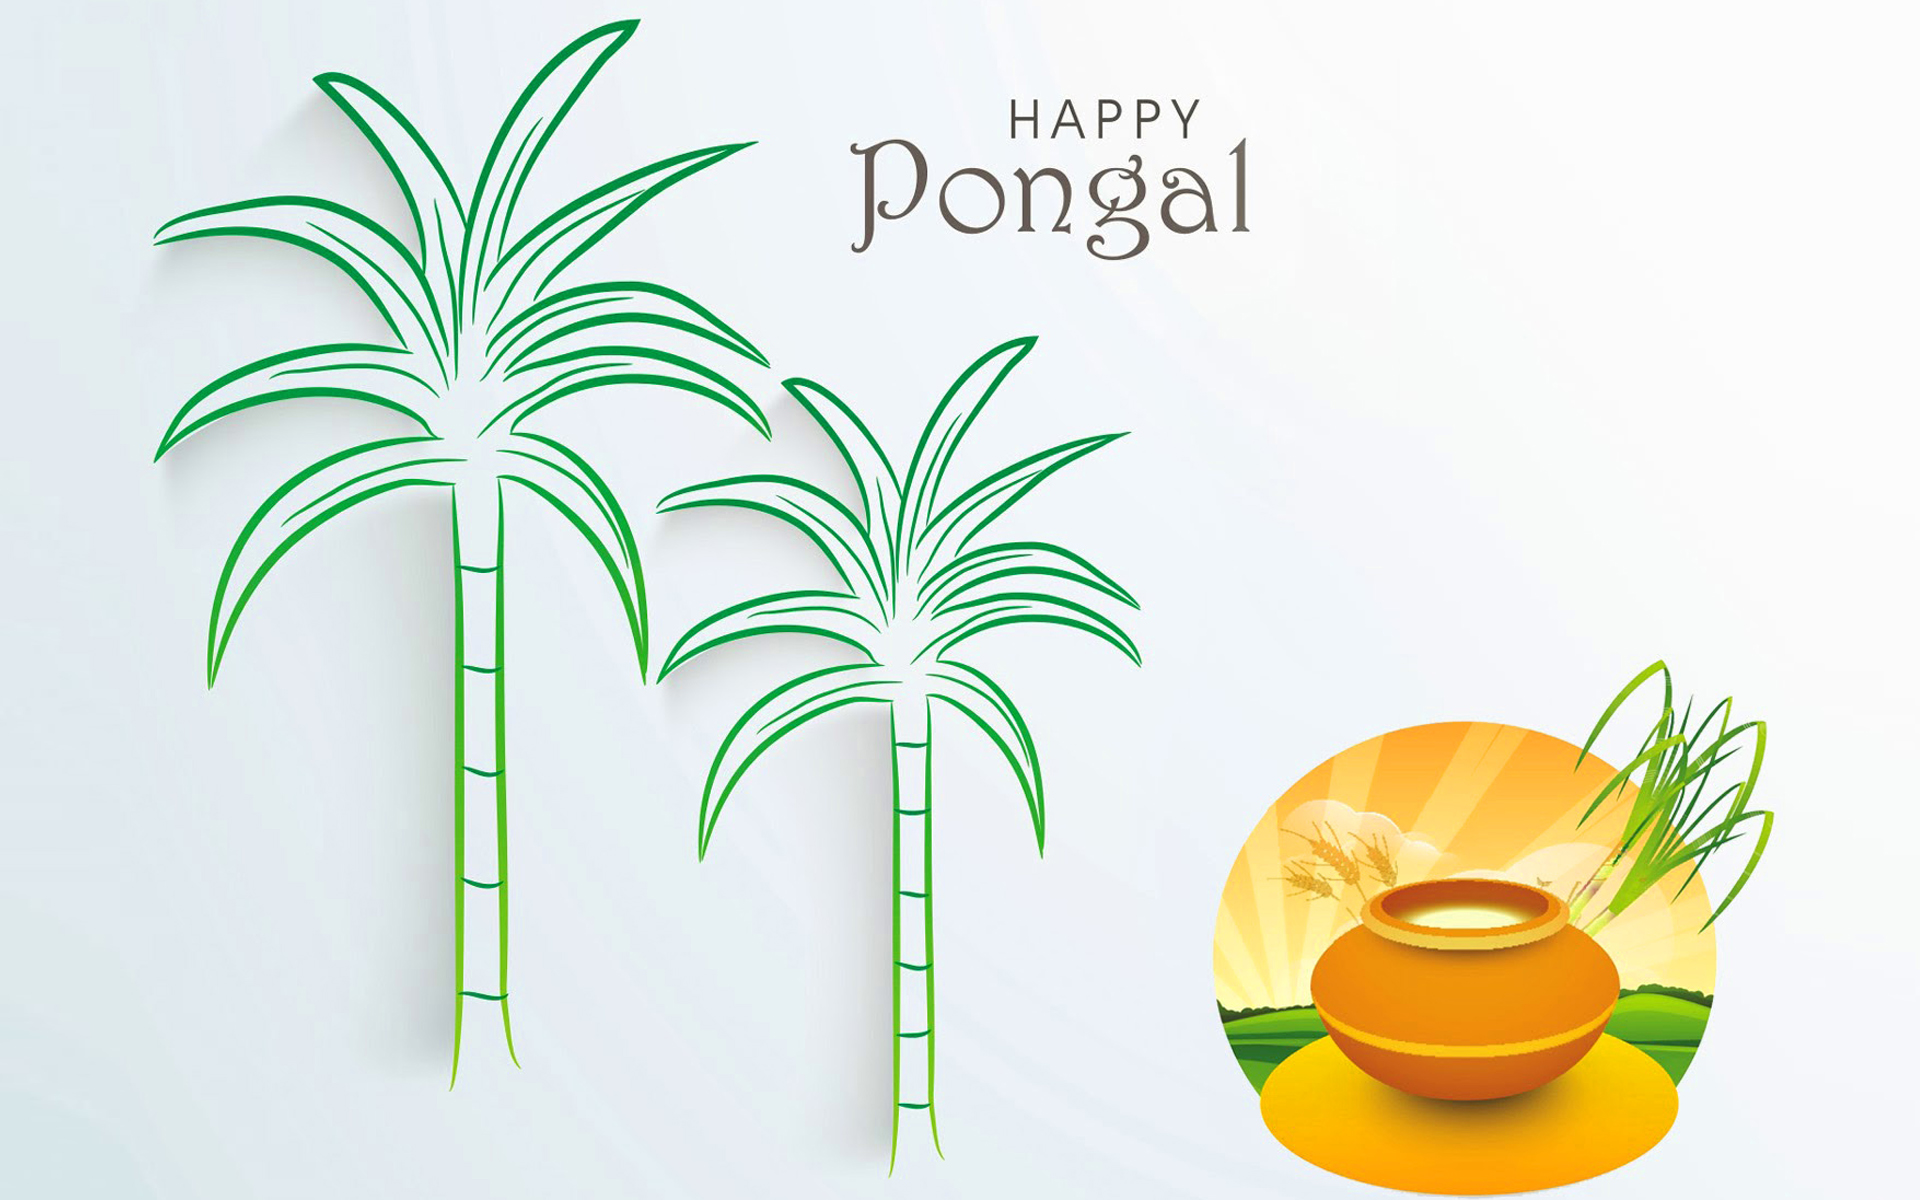 Happy Pongal 2017 Wishes, SMS & Text Messages in Tamil, English & Hindi